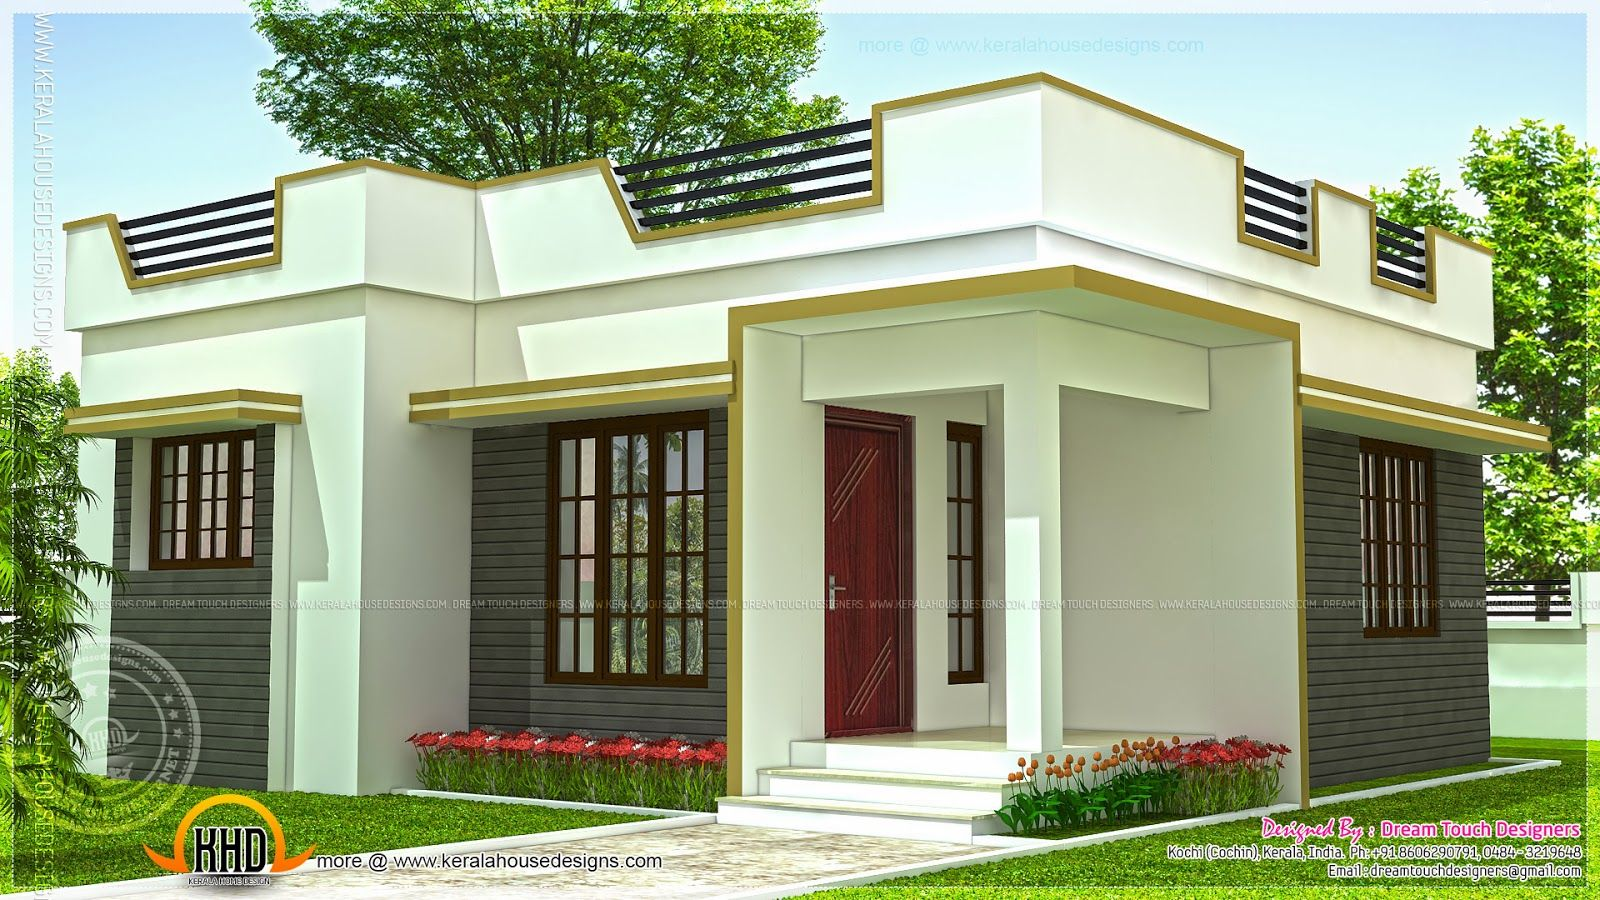 Lately 21 small house design kerala small house for Modern small home designs india